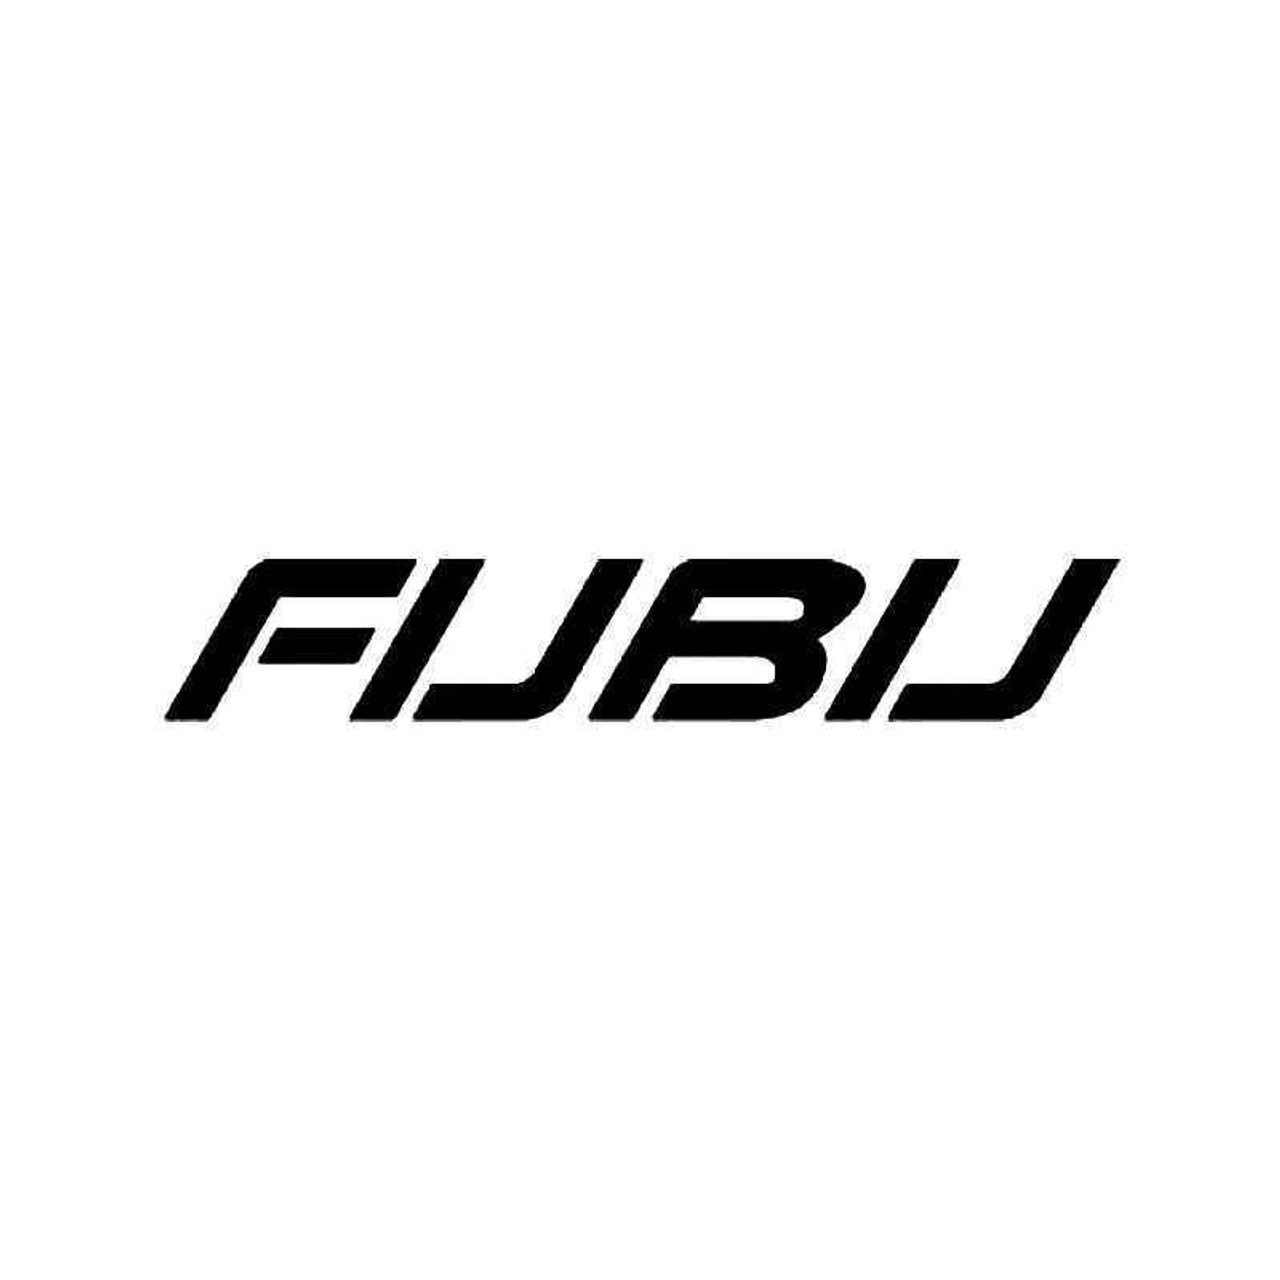 Image result for fubu logo